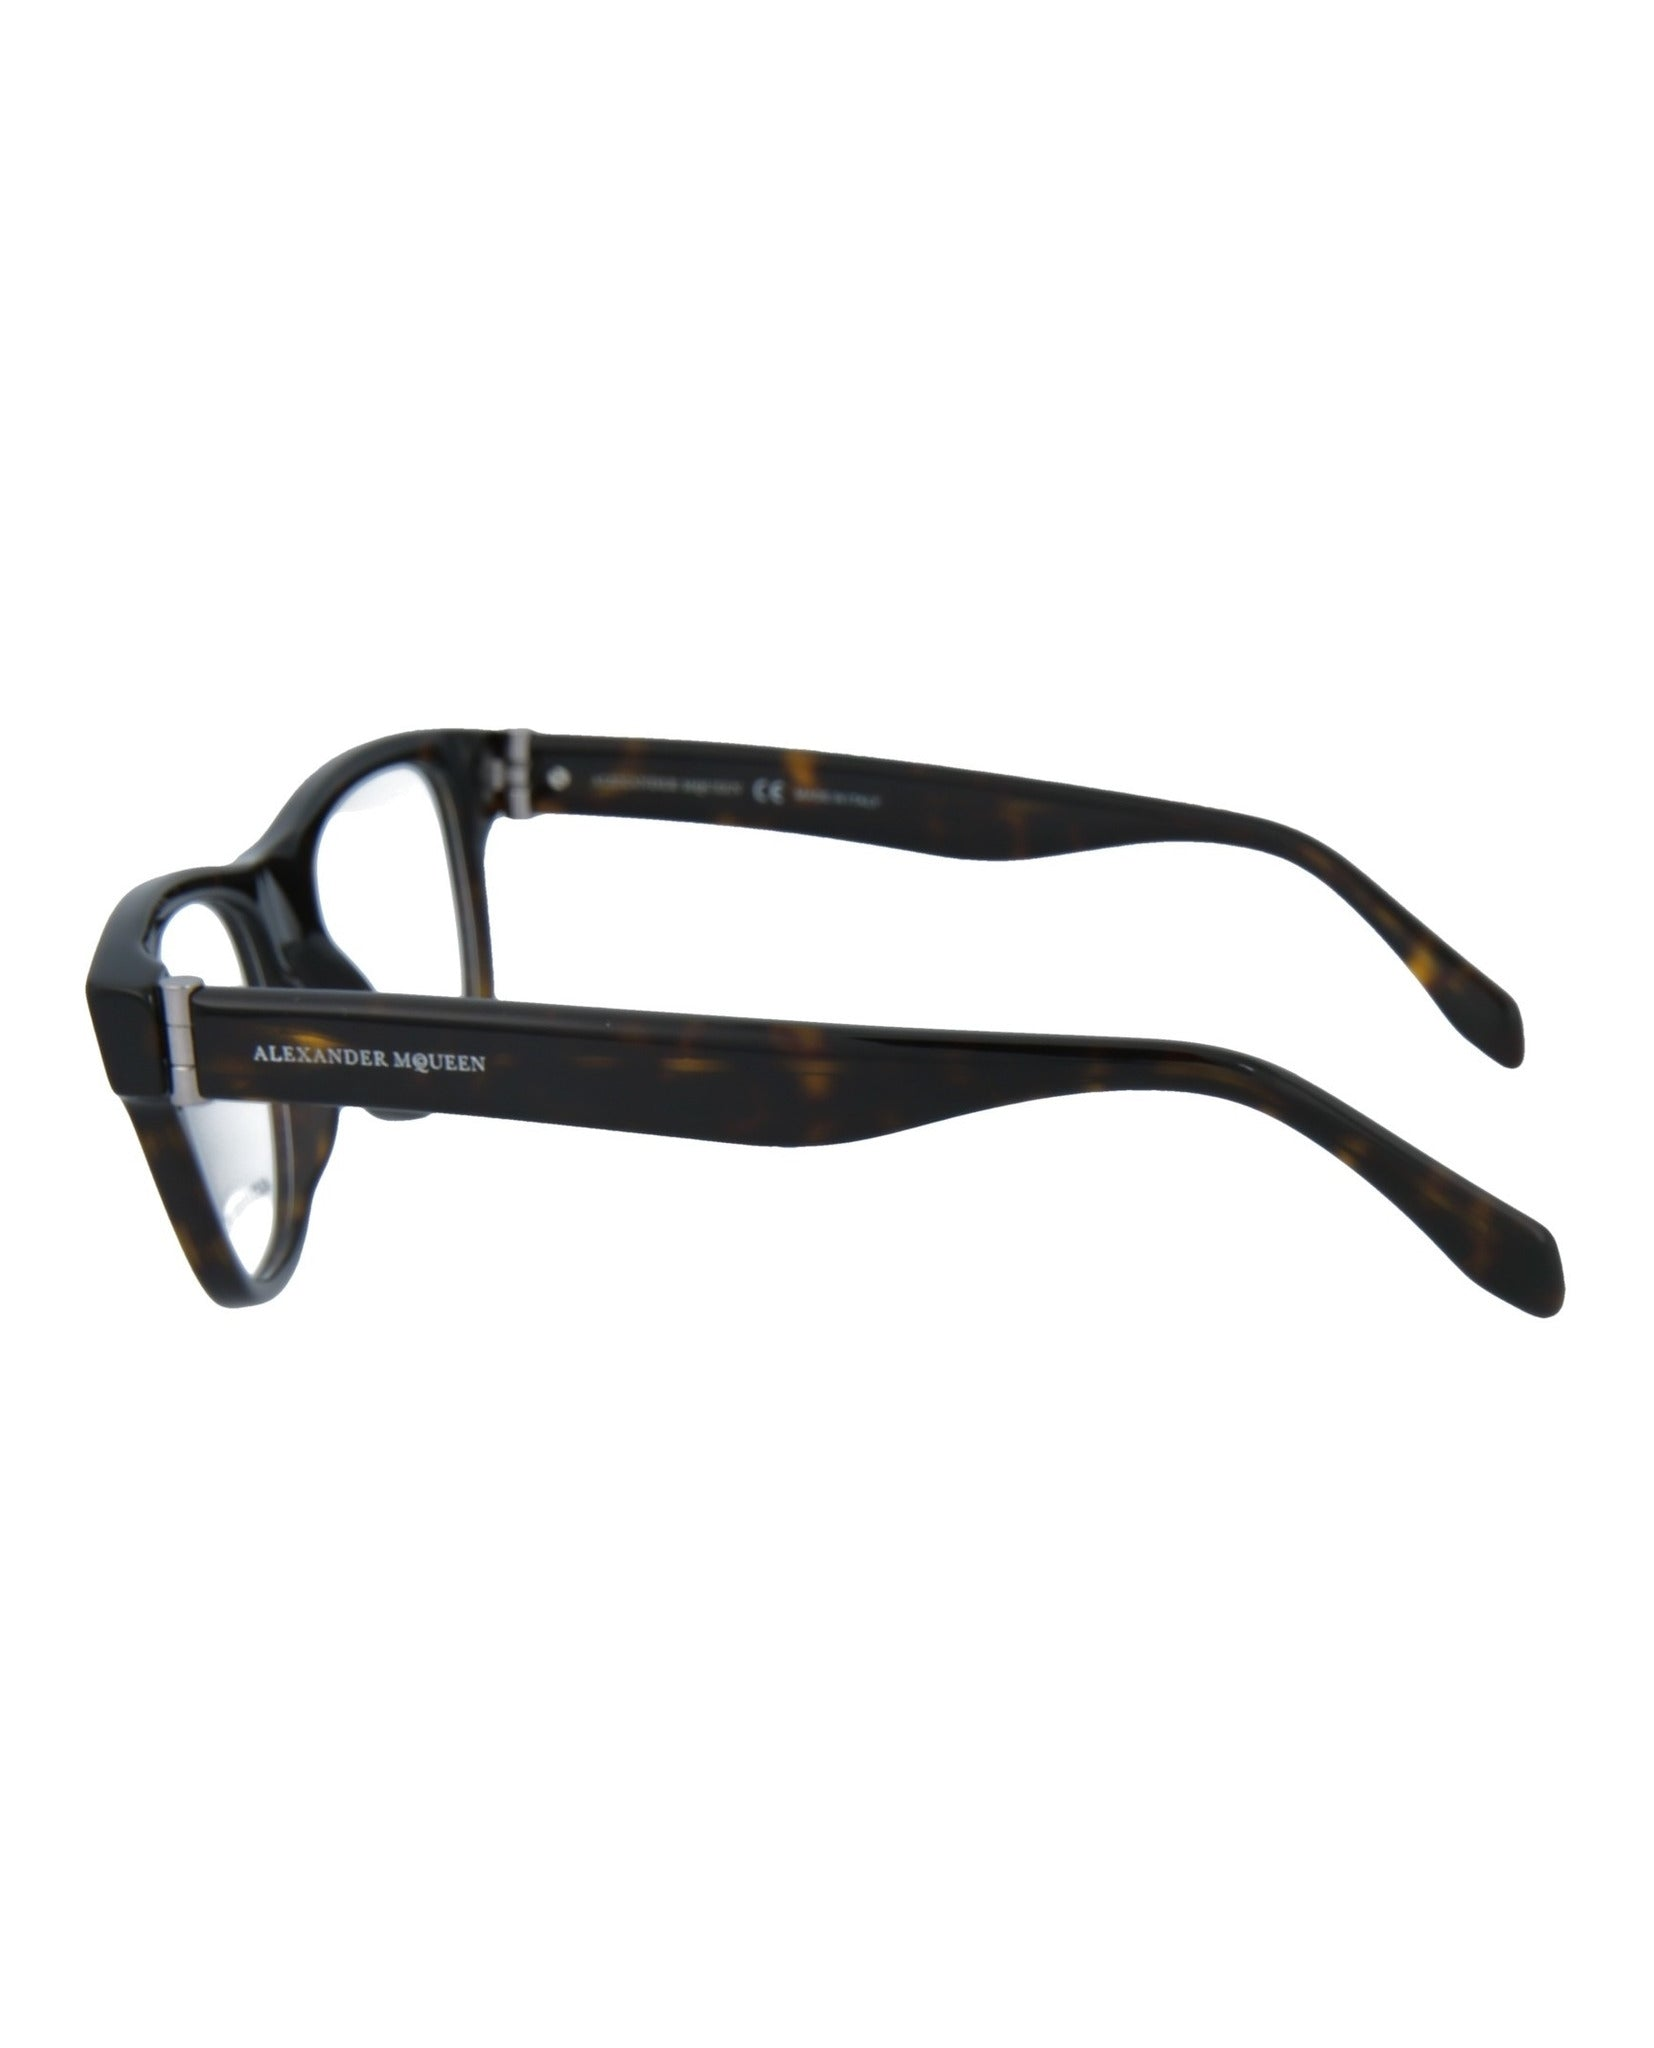 Alexander McQueen Square/Rectangle Optical Frames